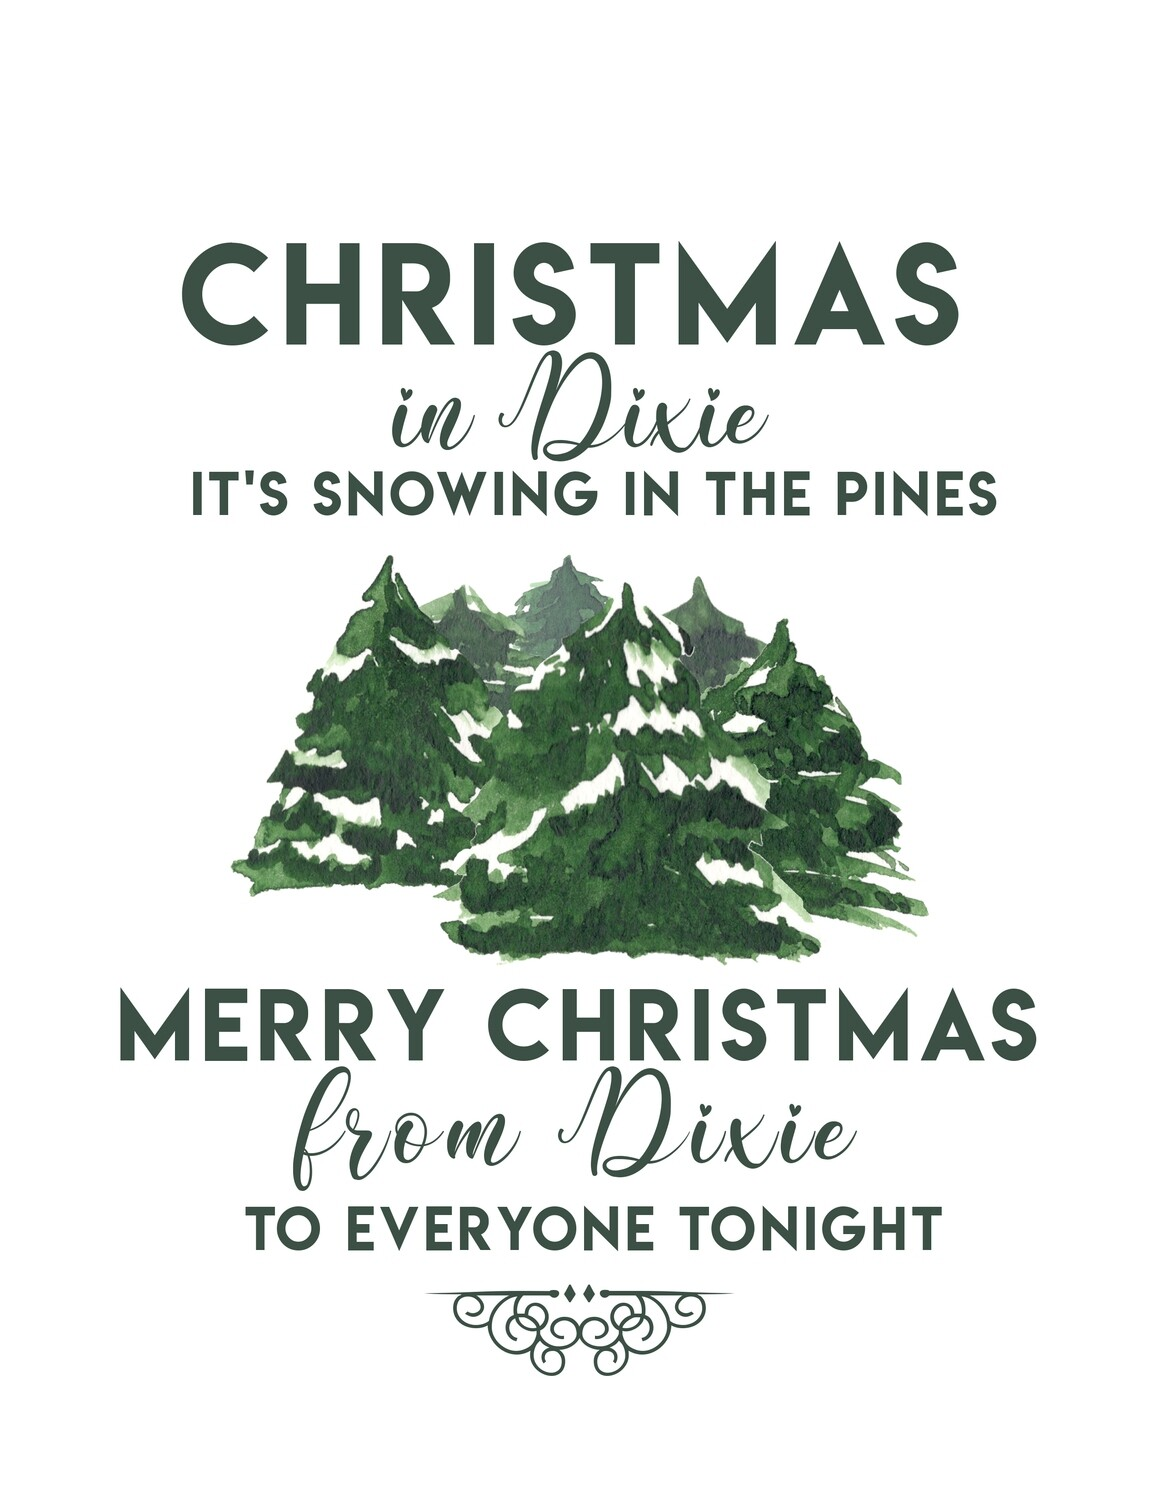 Christmas in Dixie Snowy Pines Printable